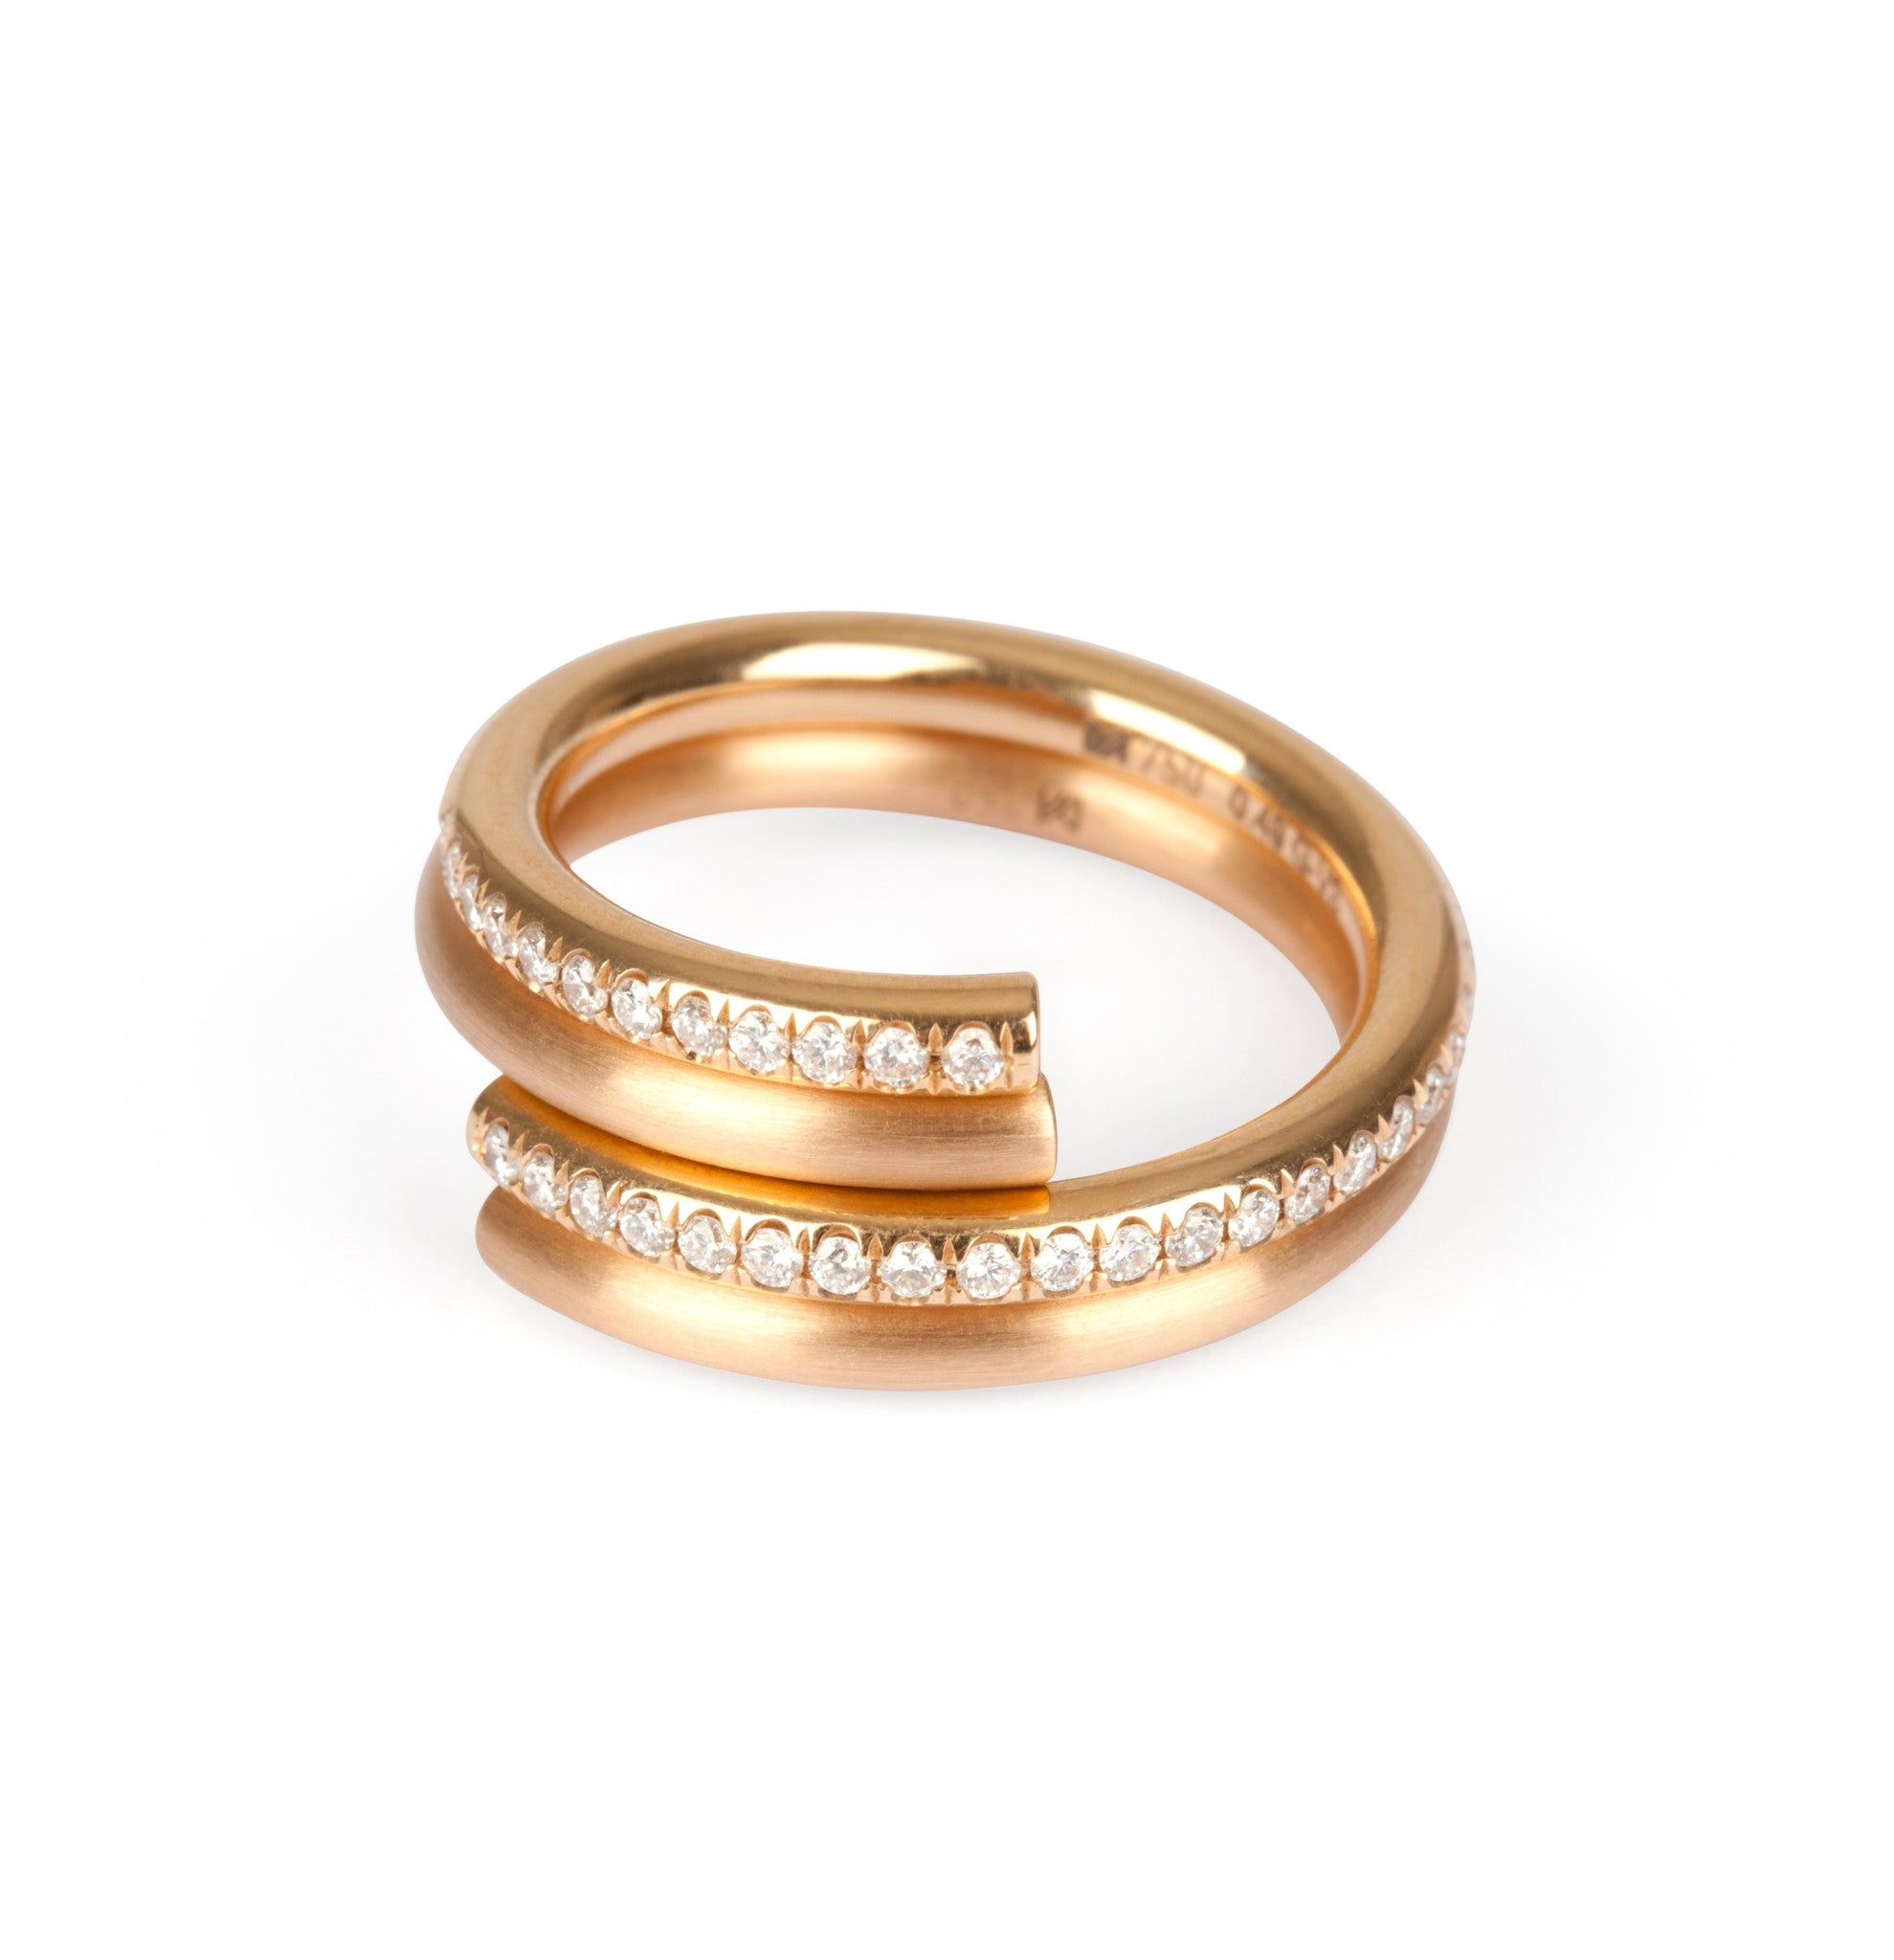 jewelry wedding rose gold band at j ring possession for master carat bands id rings diamond piaget sale